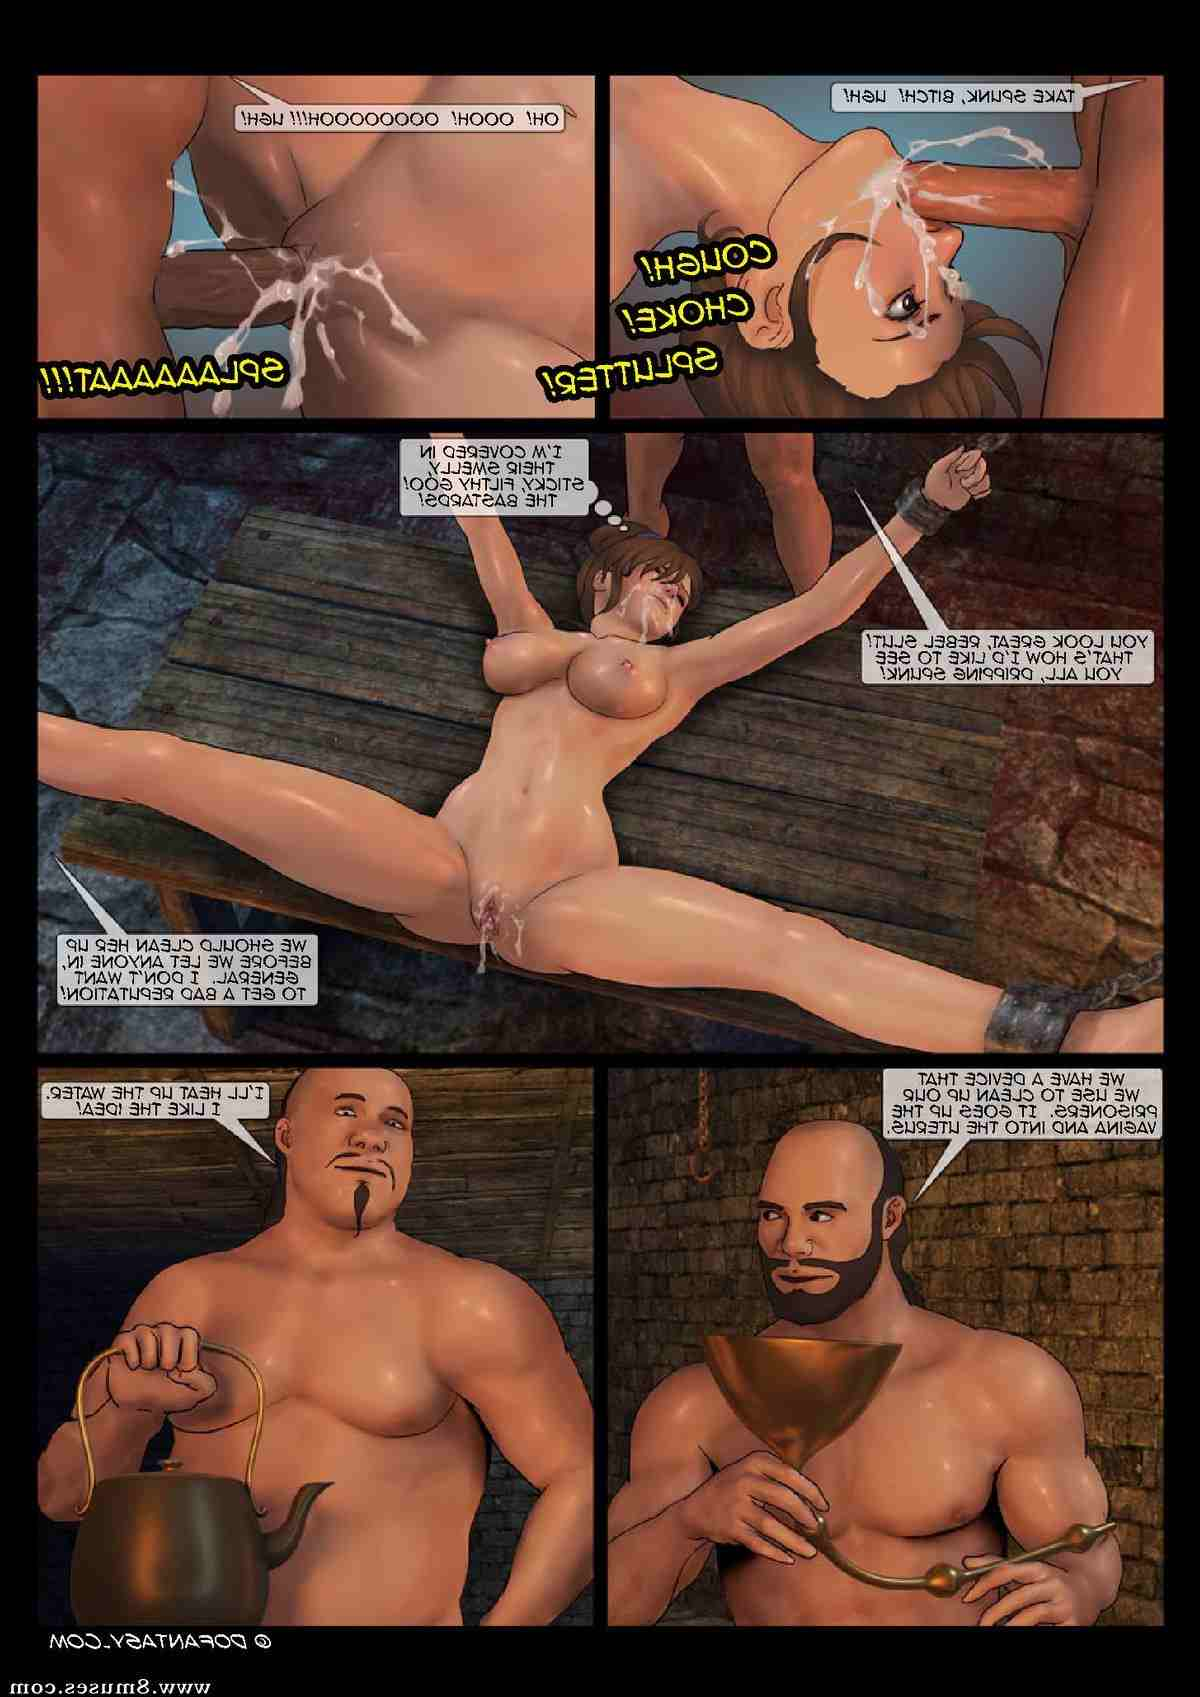 Fansadox-Comics/401-500/Fansadox-412-Feather-Female-General-2 Fansadox_412_-_Feather_-_Female_General_2__8muses_-_Sex_and_Porn_Comics_28.jpg